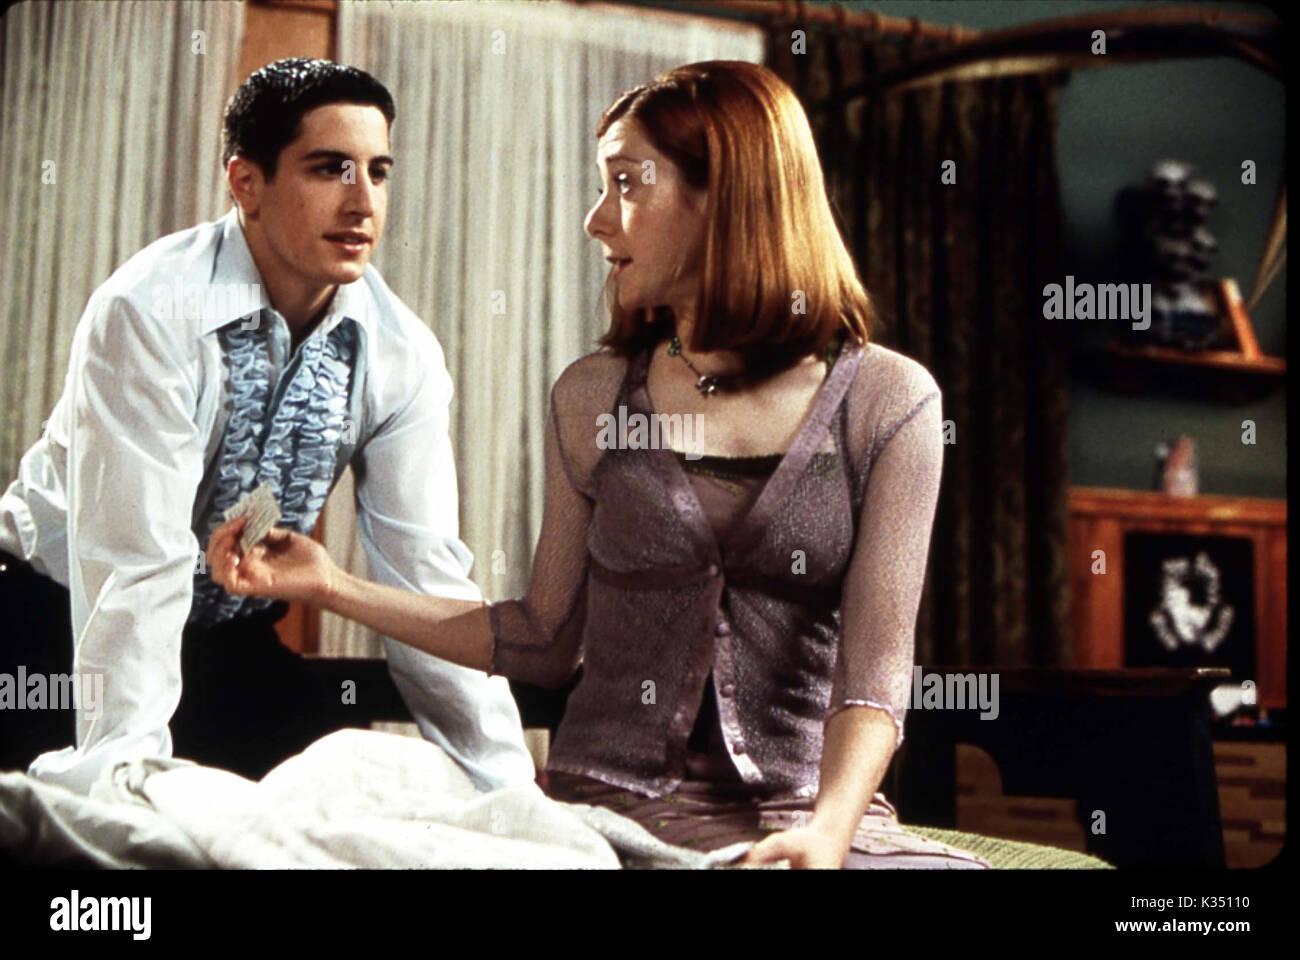 Alyson Hannigan American Pie Hot alyson hannigan stock photos & alyson hannigan stock images